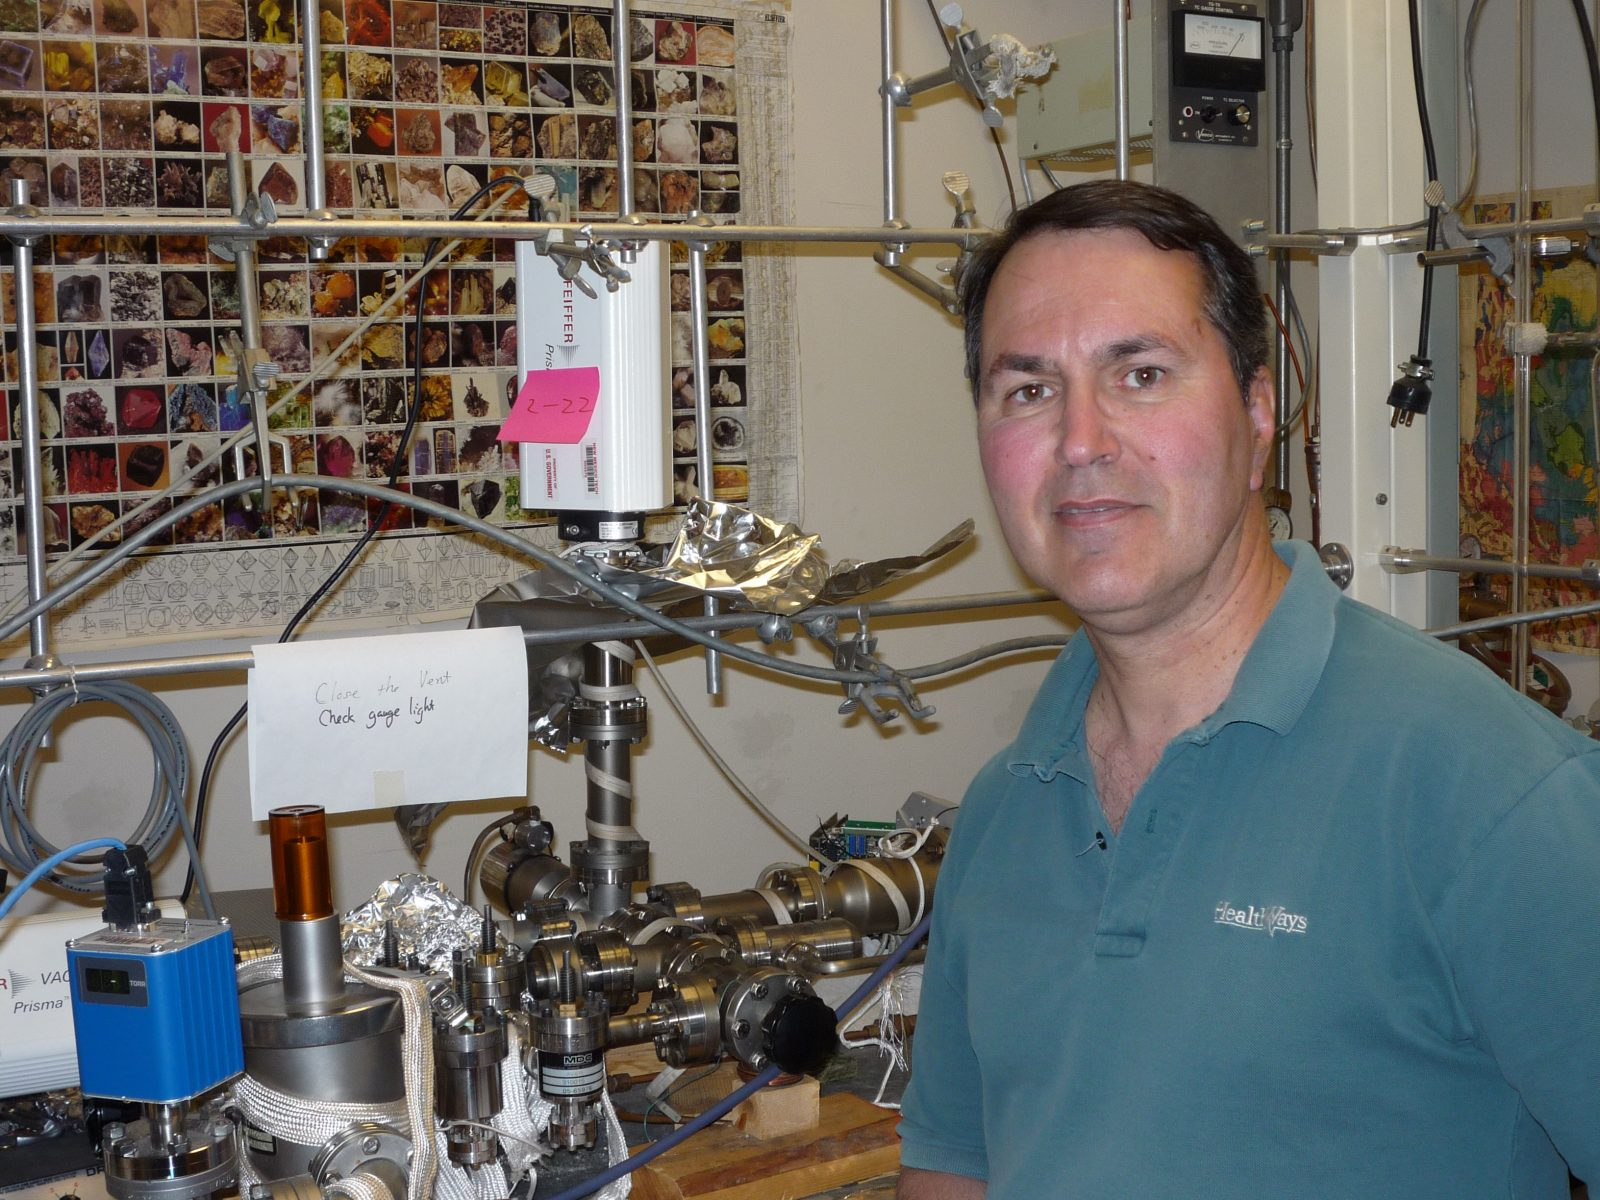 Earth Sciences Professor Nigel Blamey in front of a machine built to measure oxygen in prehistoric air.